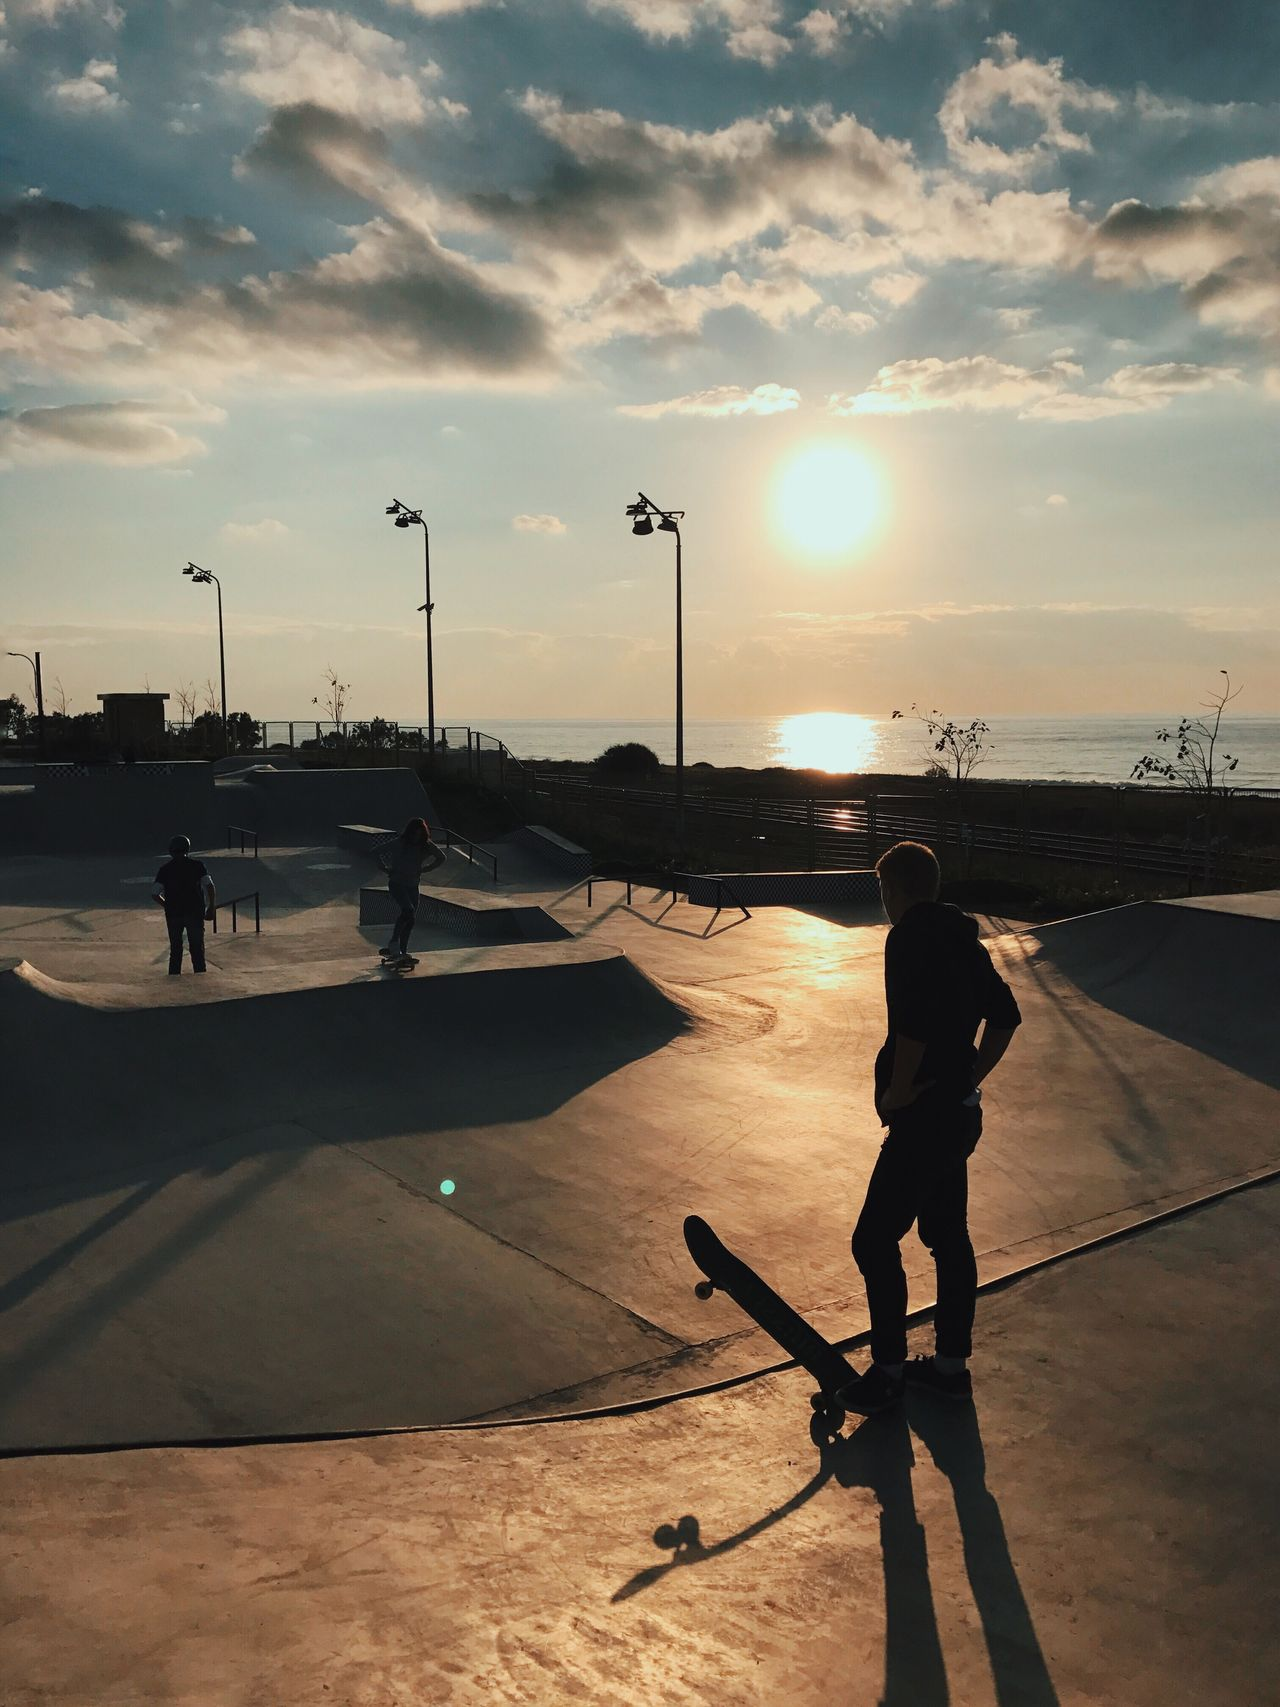 Real People Sunset Sport Sunlight Leisure Activity Sky Full Length Shadow Lifestyles Silhouette One Person Outdoors Cloud - Sky Skateboard Park Nature Men Childhood Extreme Sports Day People Shotoniphone7plus מייאייפון7 IPhone7Plus מייסקייט The Street Photographer - 2017 EyeEm Awards